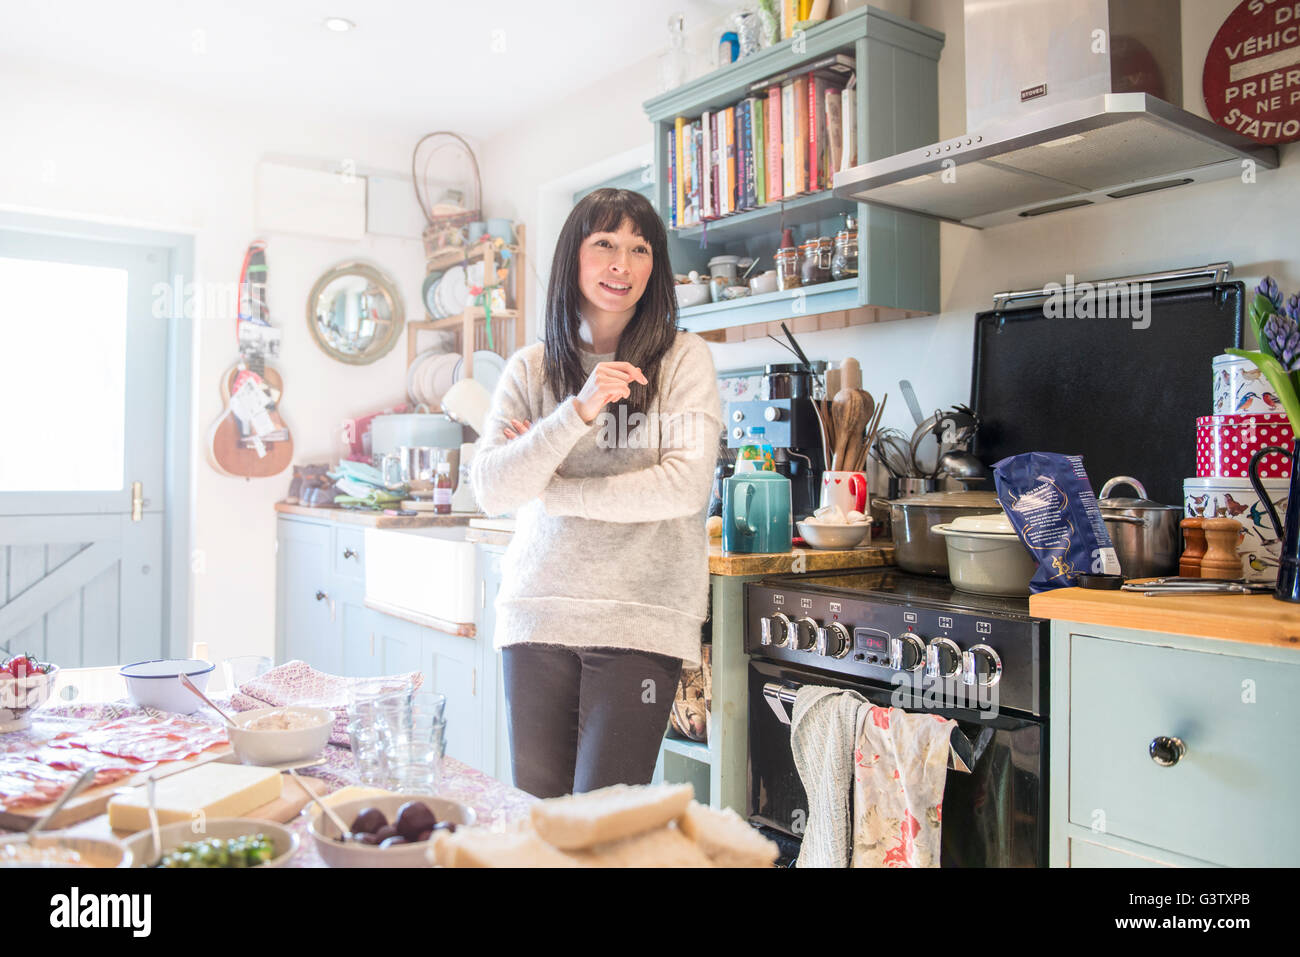 A dark haired woman standing chatting in a kitchen. - Stock Image